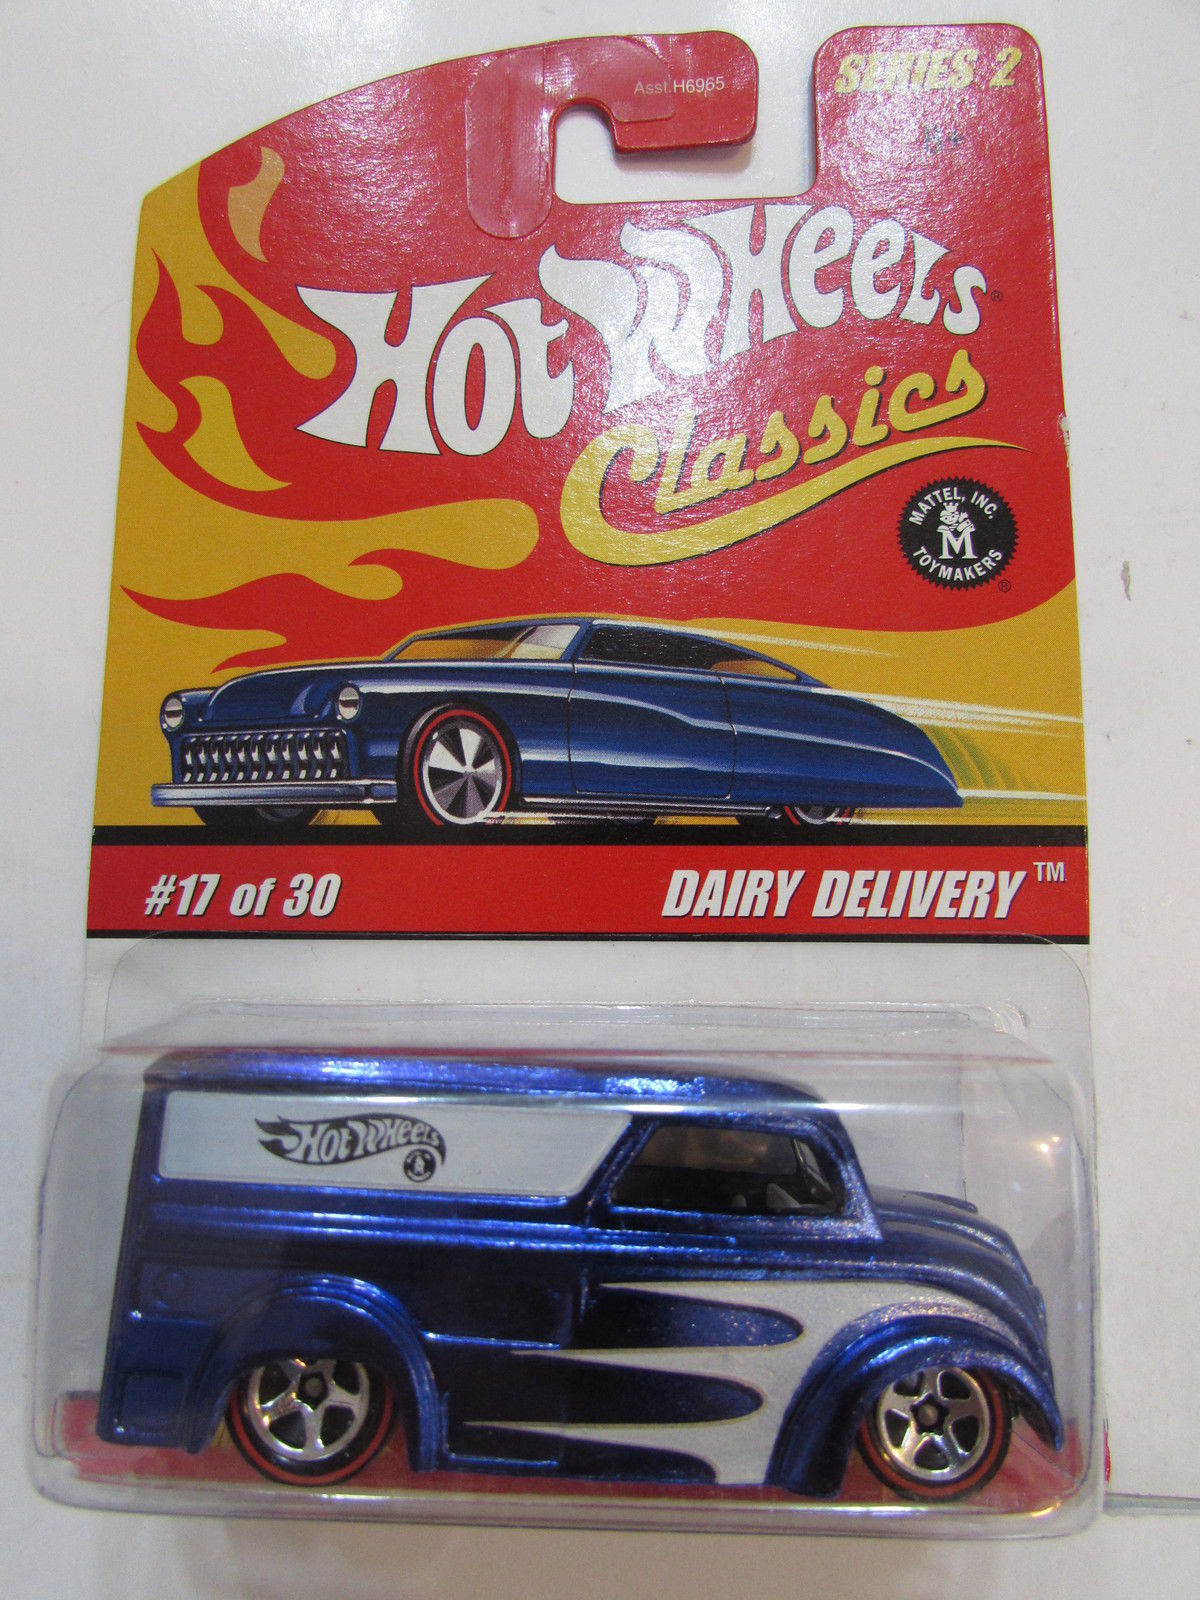 HOT WHEELS CLASSICS SERIES 2 #17/30 DAIRY DELIVERY BLUE